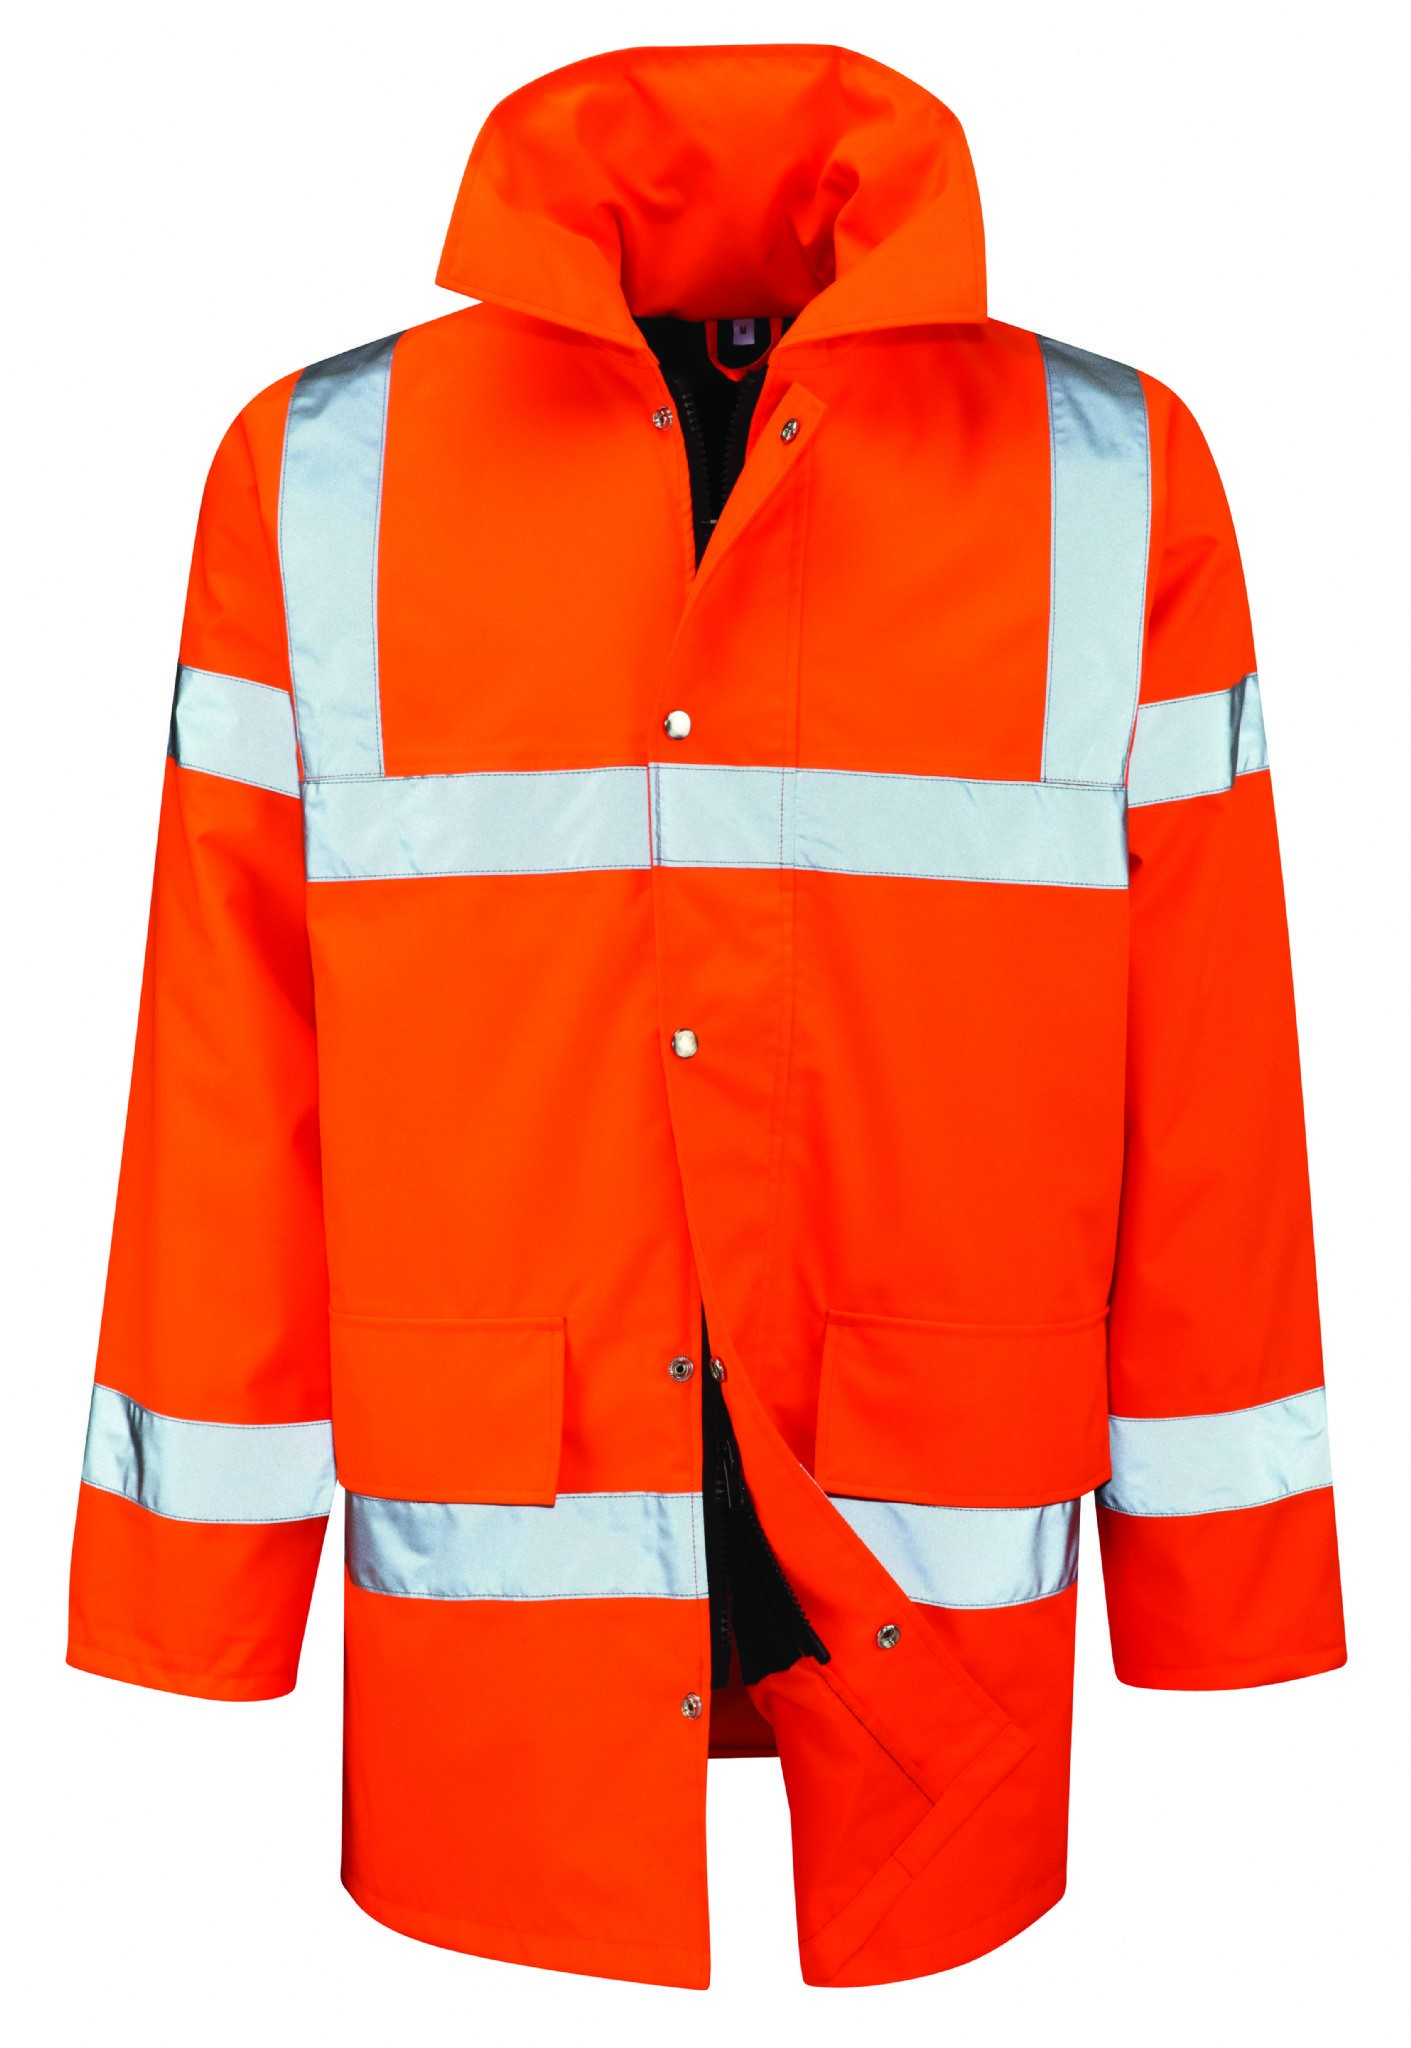 Class 3 Hi Vis Padded Traffic Jacket - CHOOSE SIZE AND COLOUR